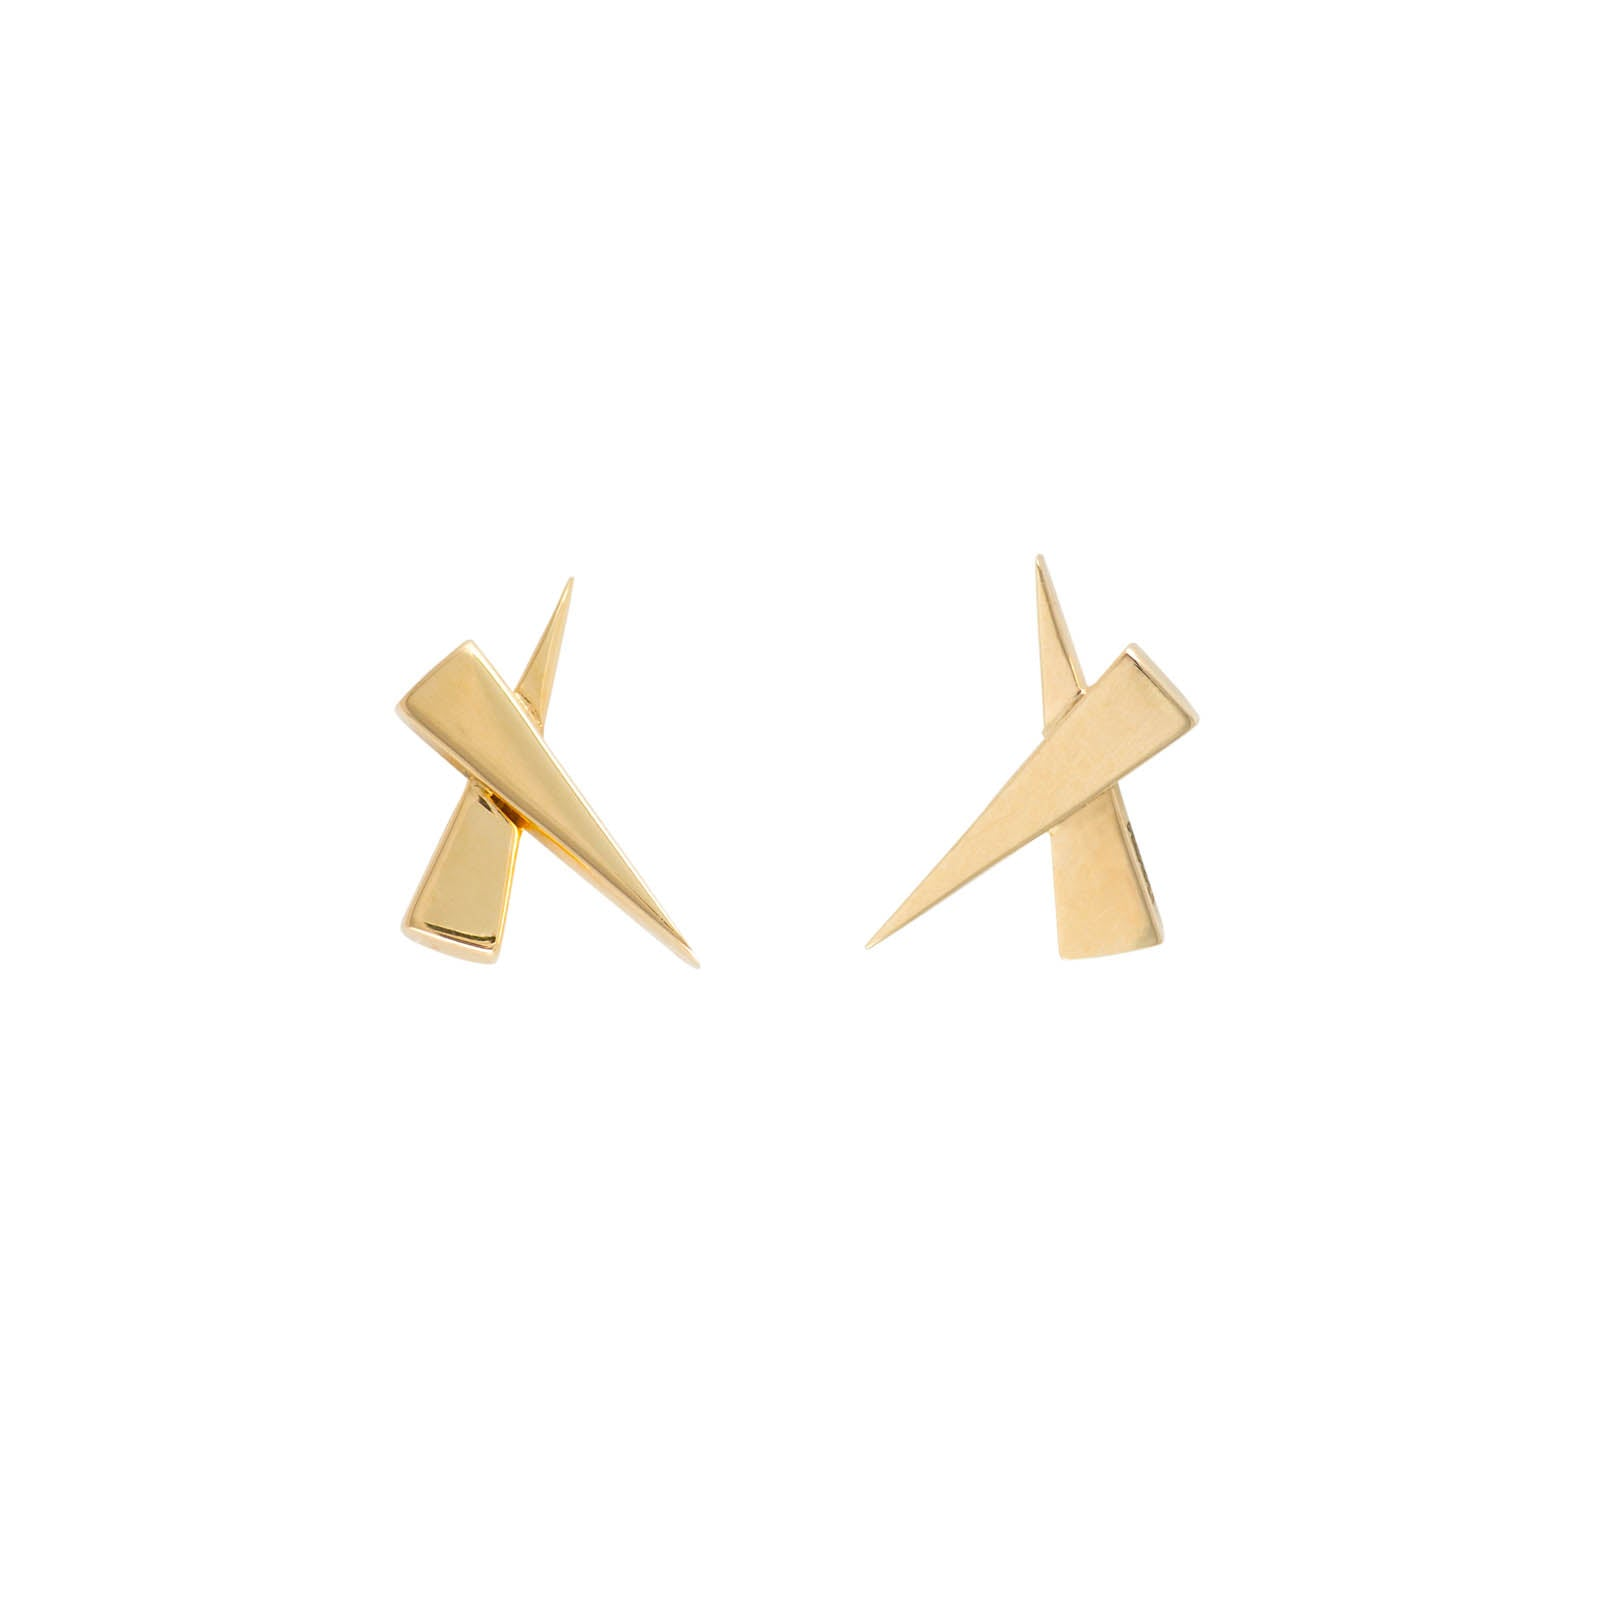 A Single Kiss earring